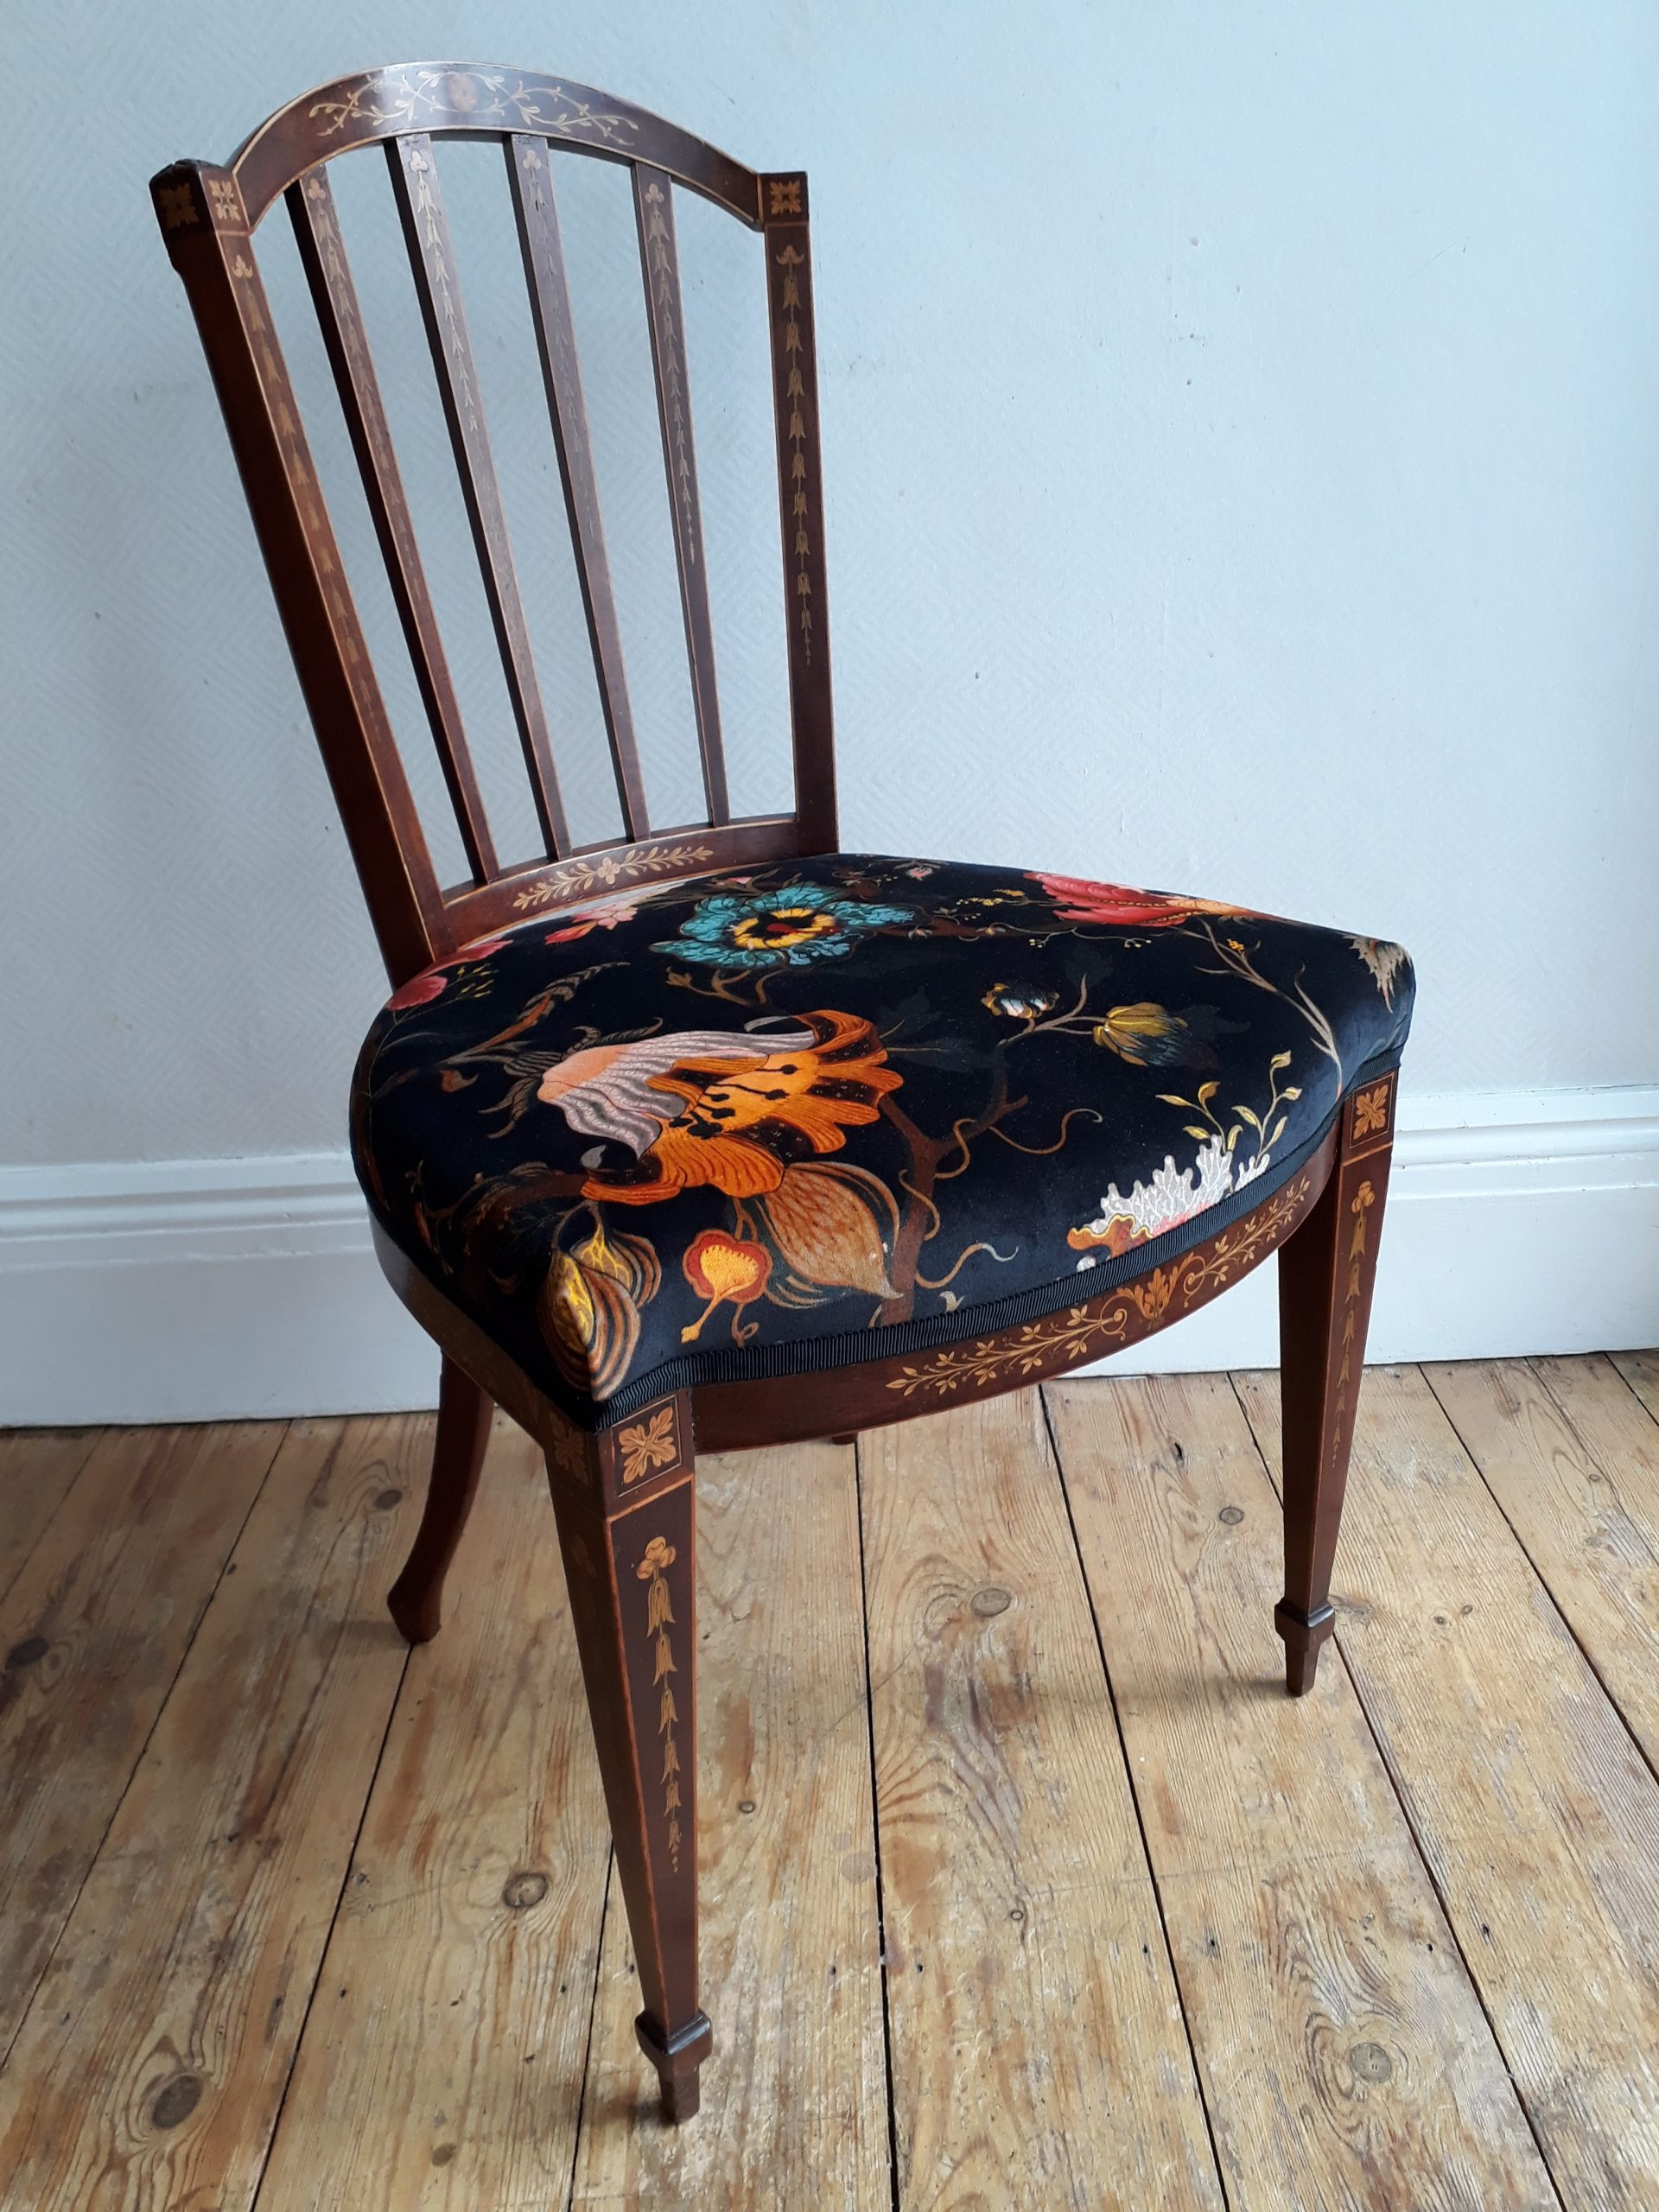 8 Edwardian Dining Chairs Re-Covered